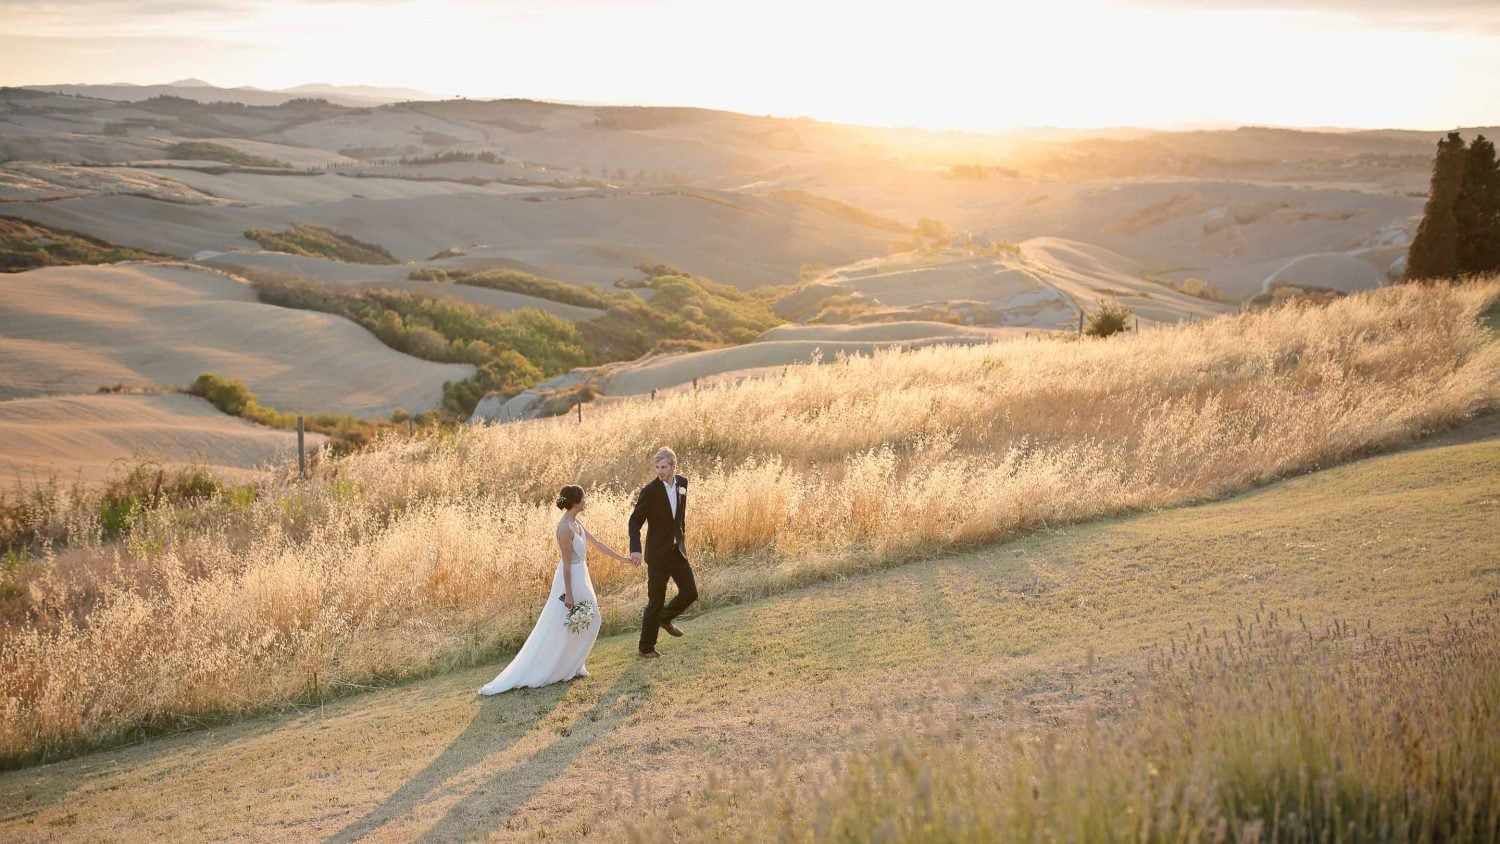 newlyweds walk happy in the countryside of the lazy olive